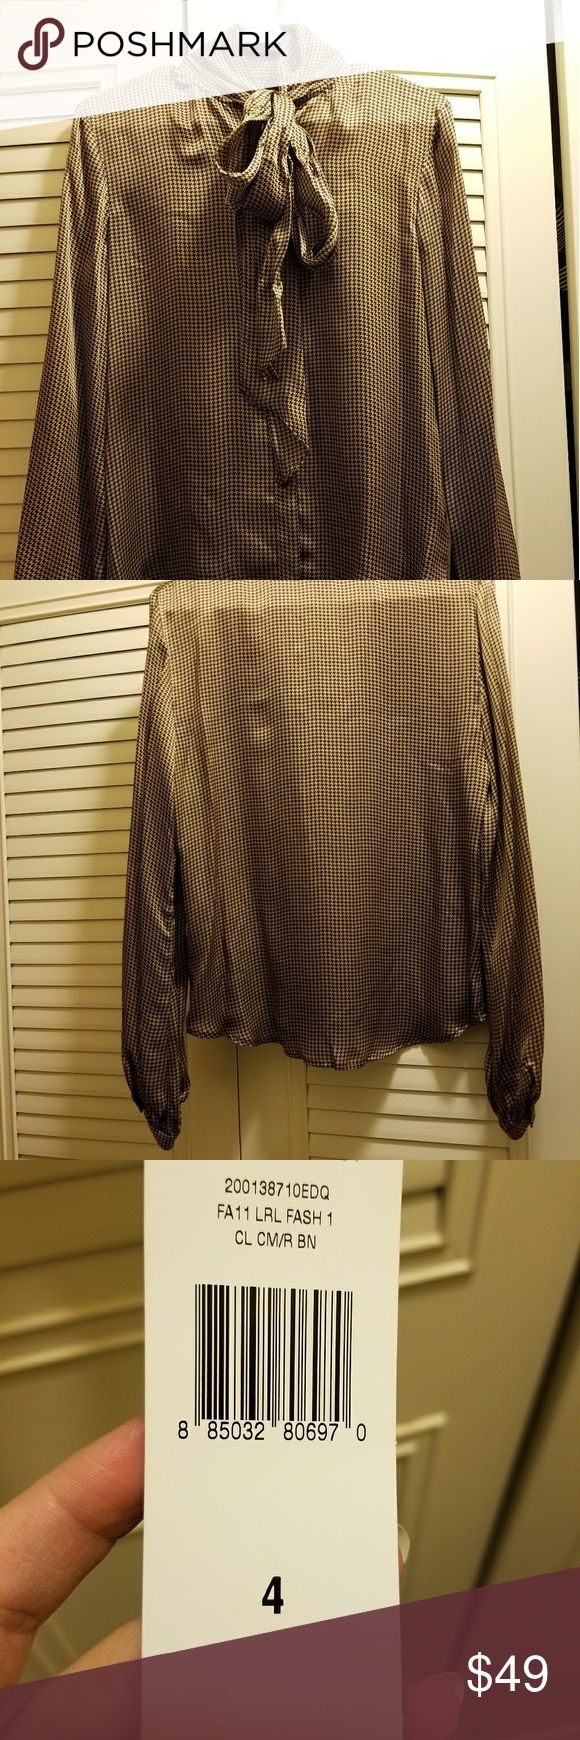 ️RALPH LAUREN silk blouse ️NWT size 4 RALPH LAUREN new with tags brown and tan houndstooth silk blouse size 4. Classic, elegant and feminine style. Original price $159 listed (seen on tag) $55 great price for timeless piece! Ralph Lauren Tops Blouses